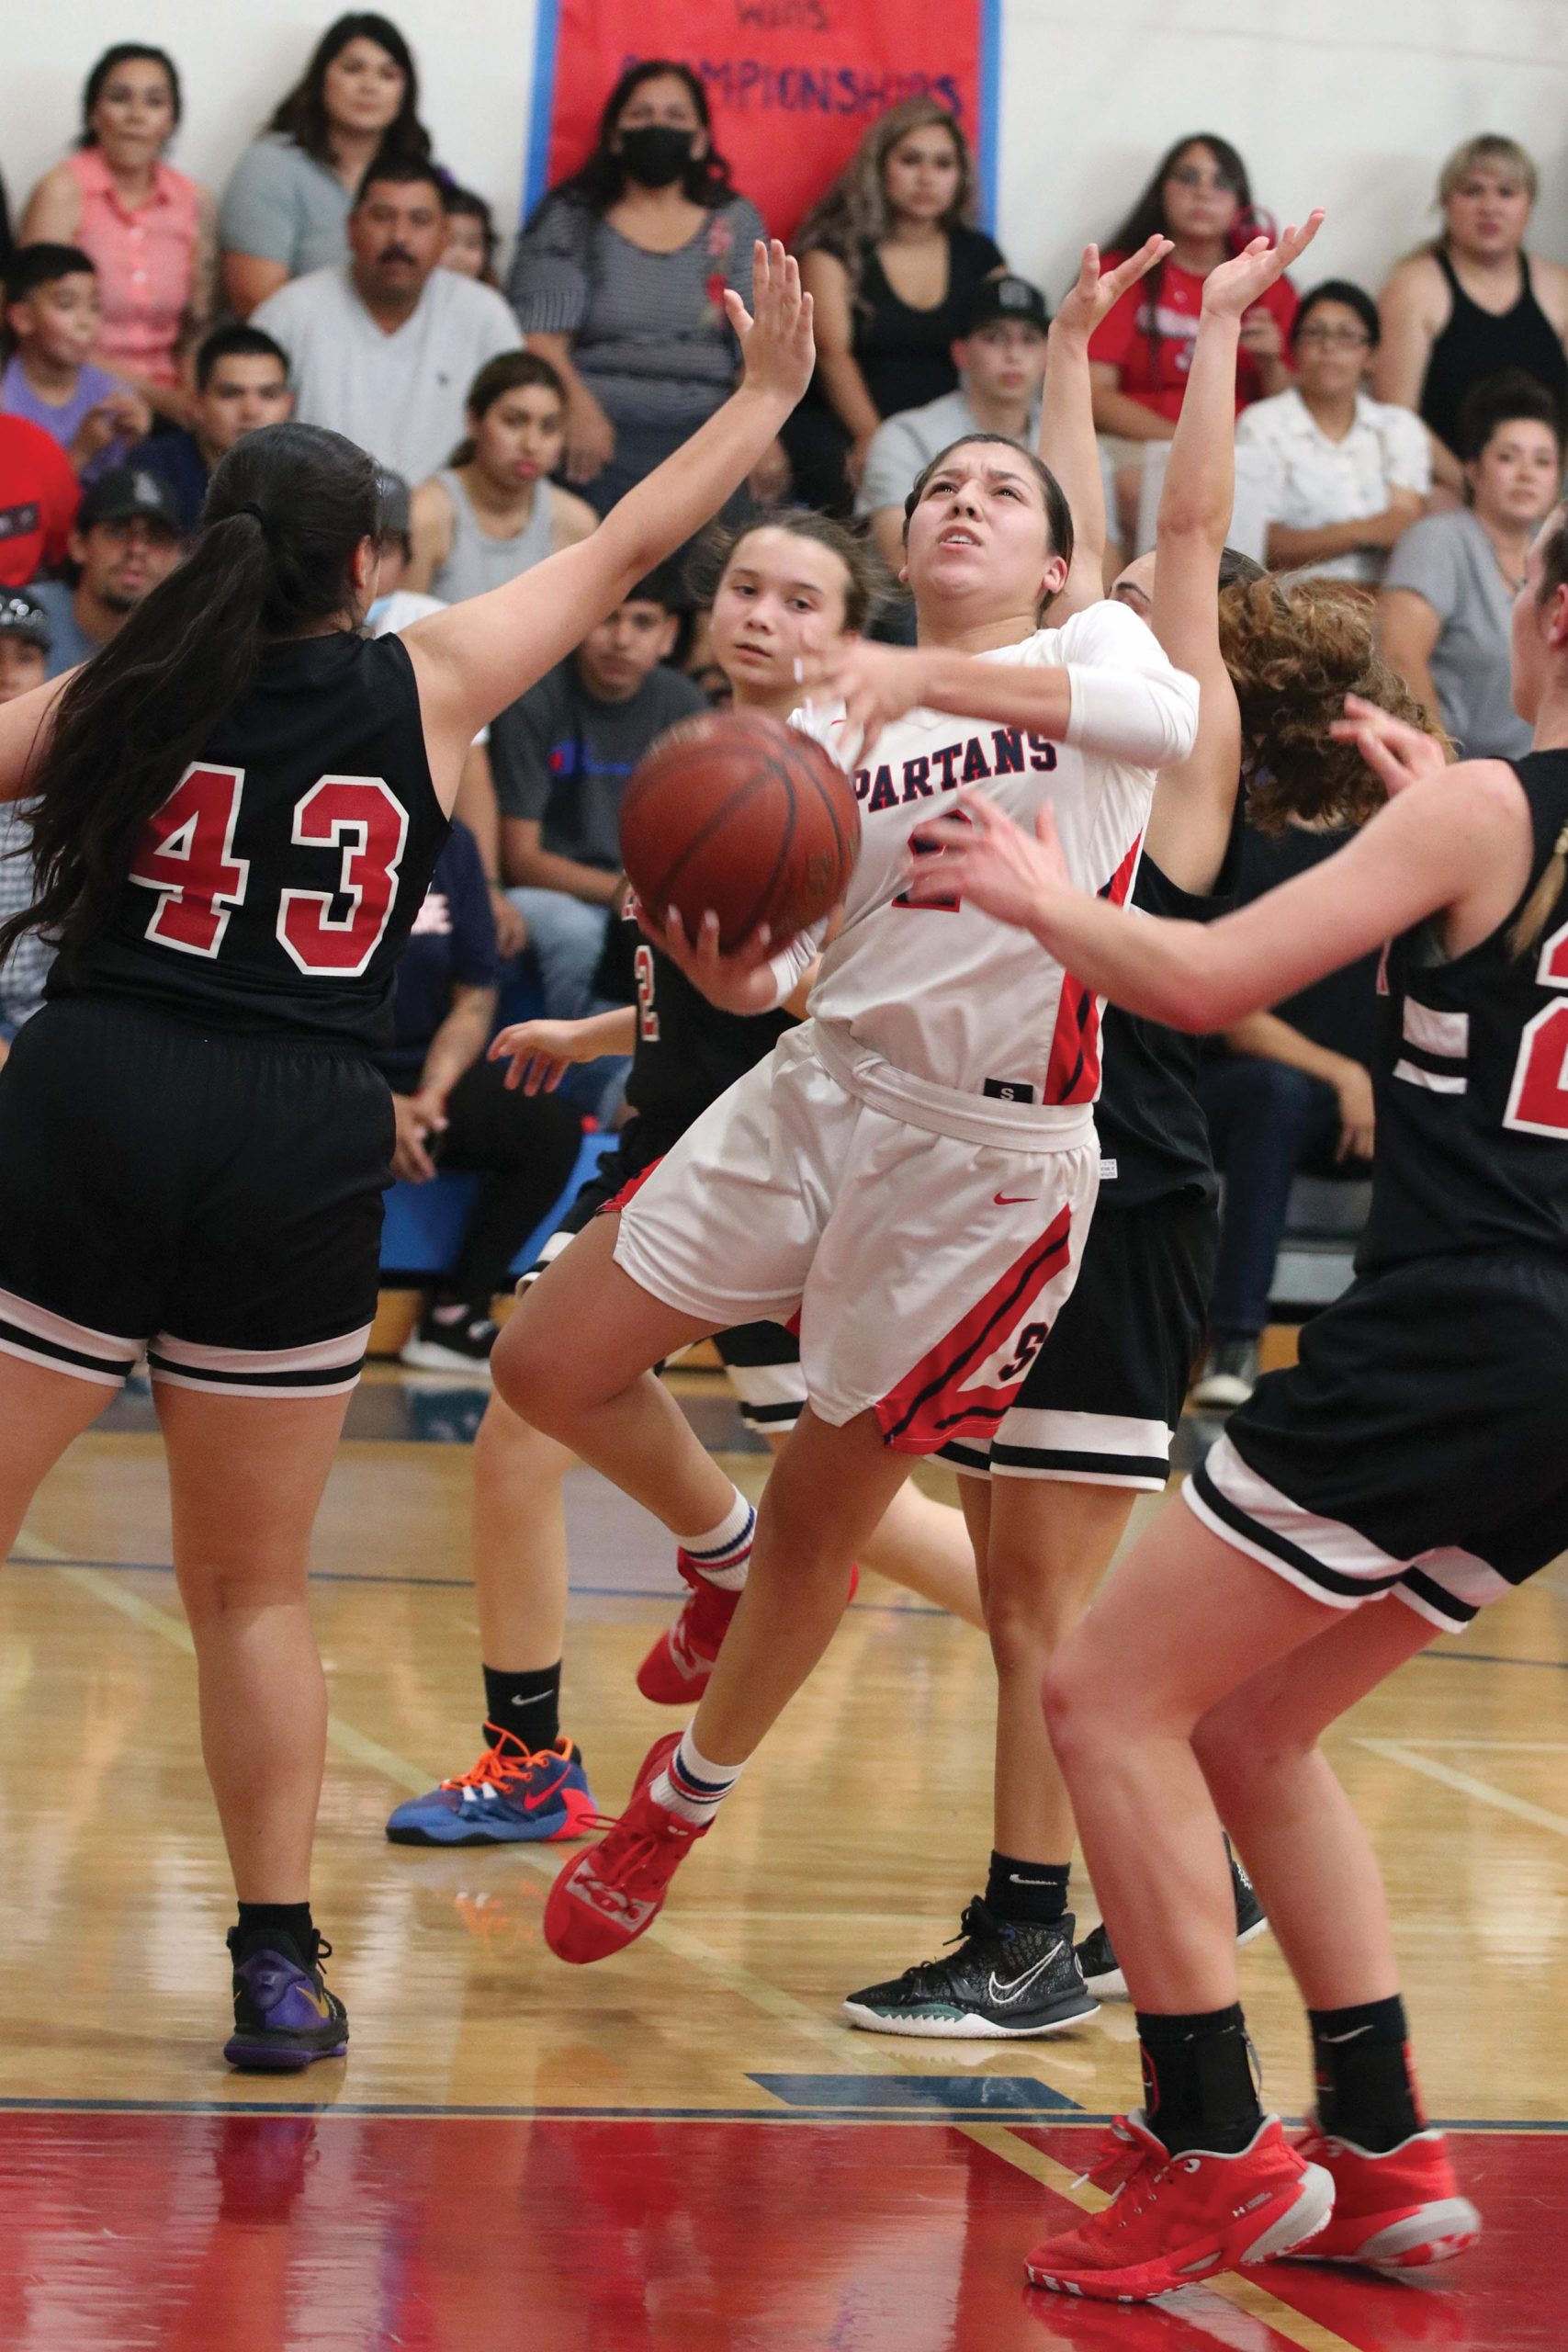 jj-sports-strathmore-regional-title_soto-contested-layup